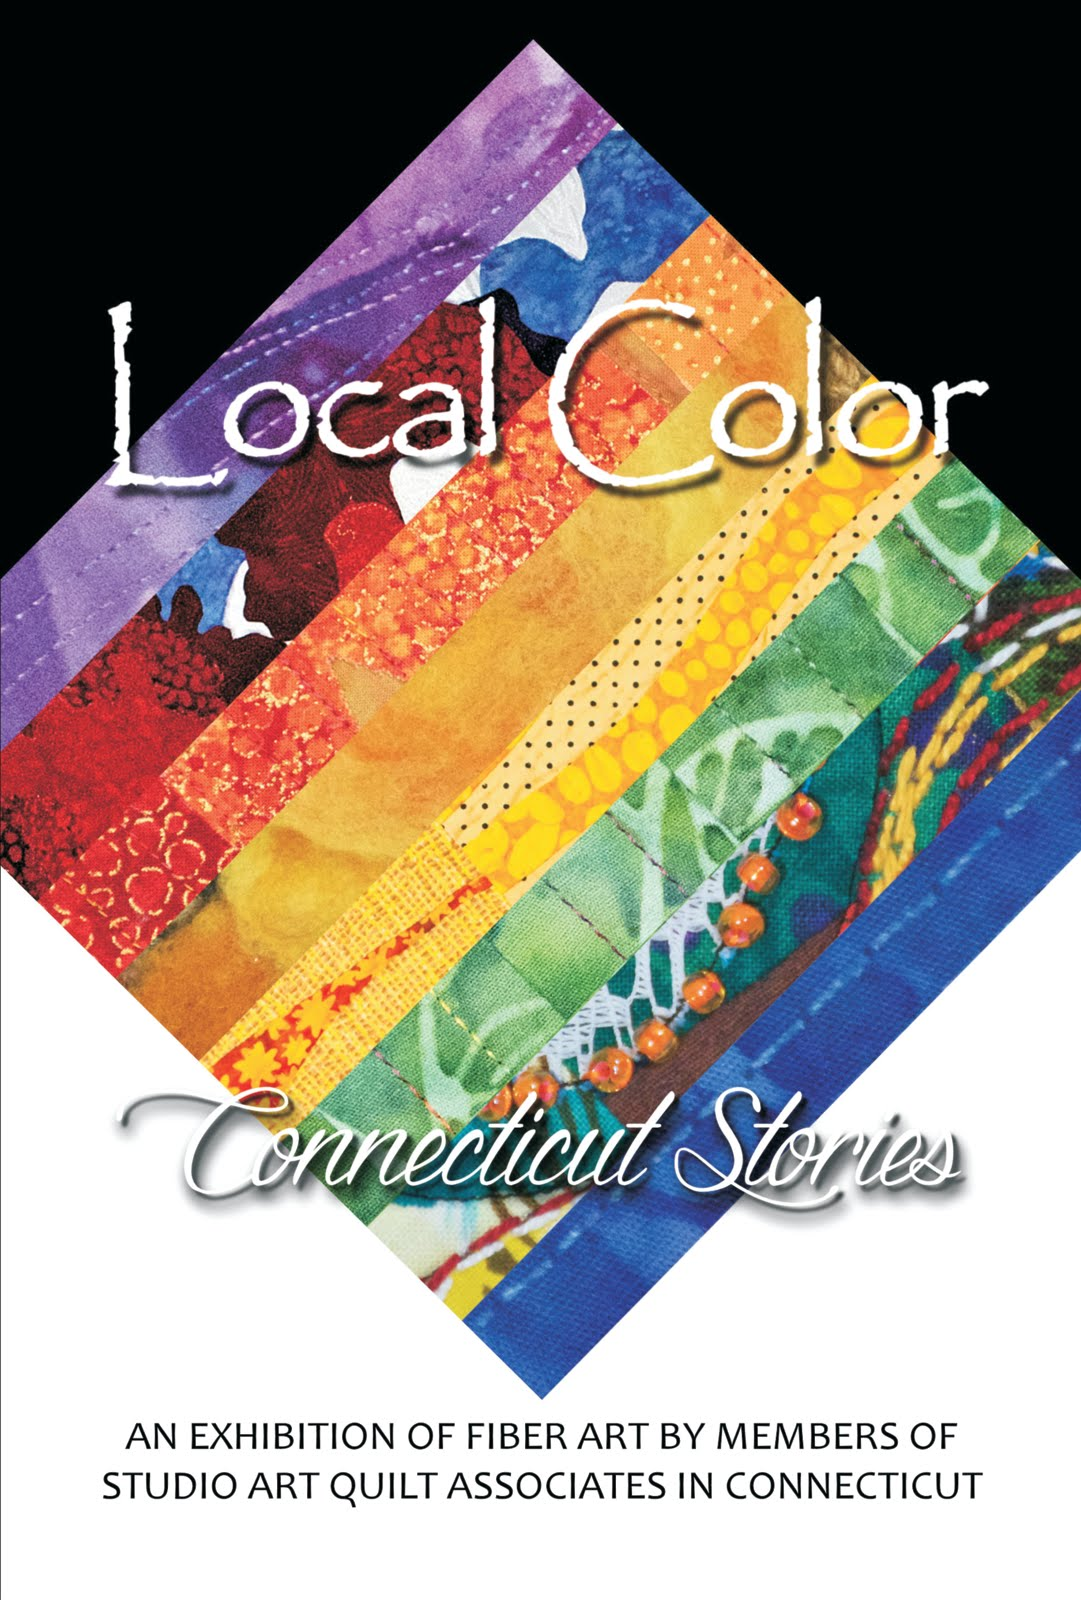 """Local Color: CT Stories"" catalog"